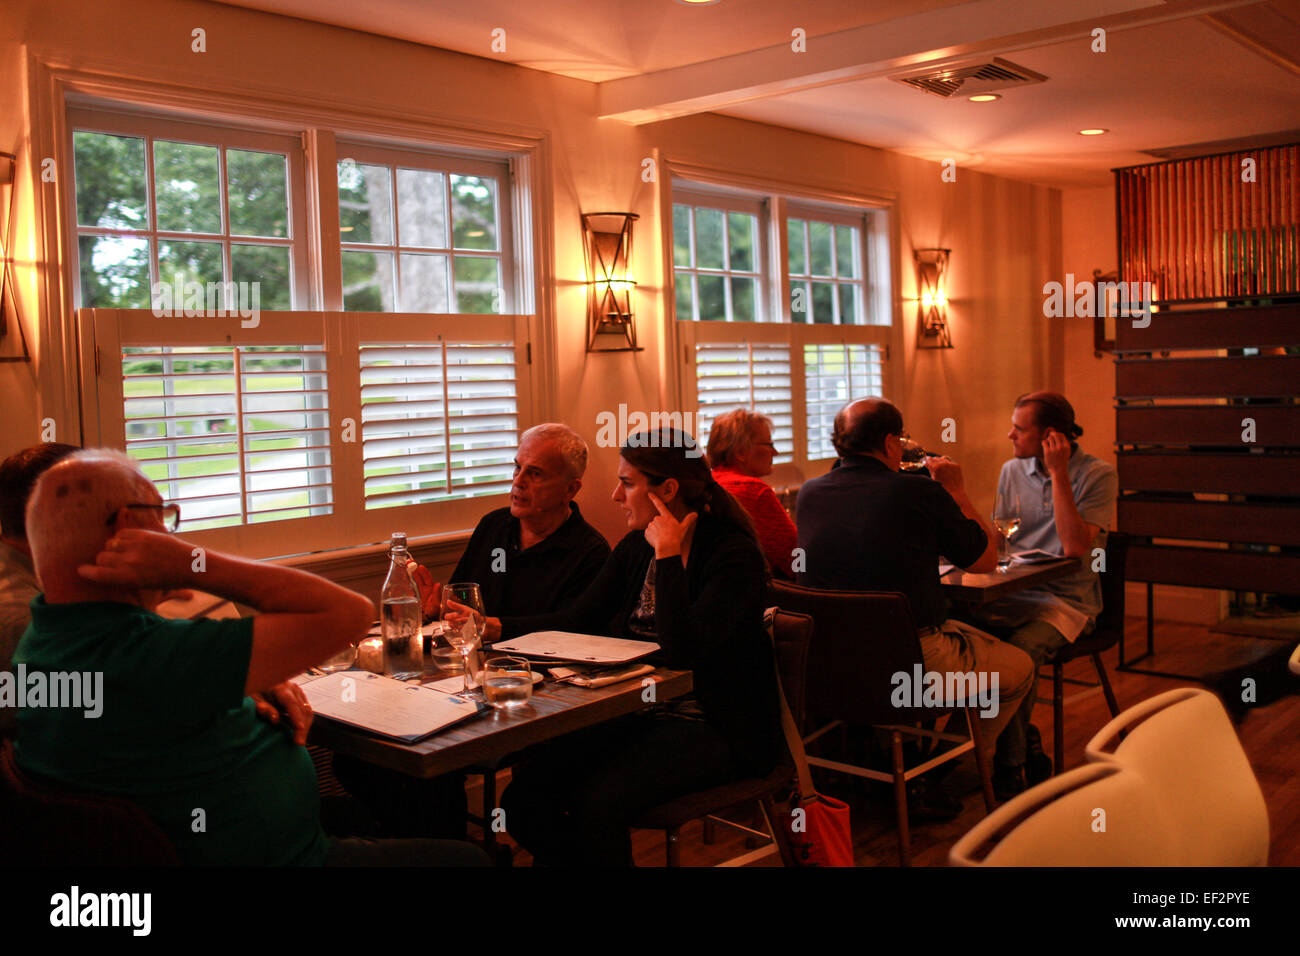 Customers dining at One Twenty One Restaurant in North Salem, NY. Stock Photo